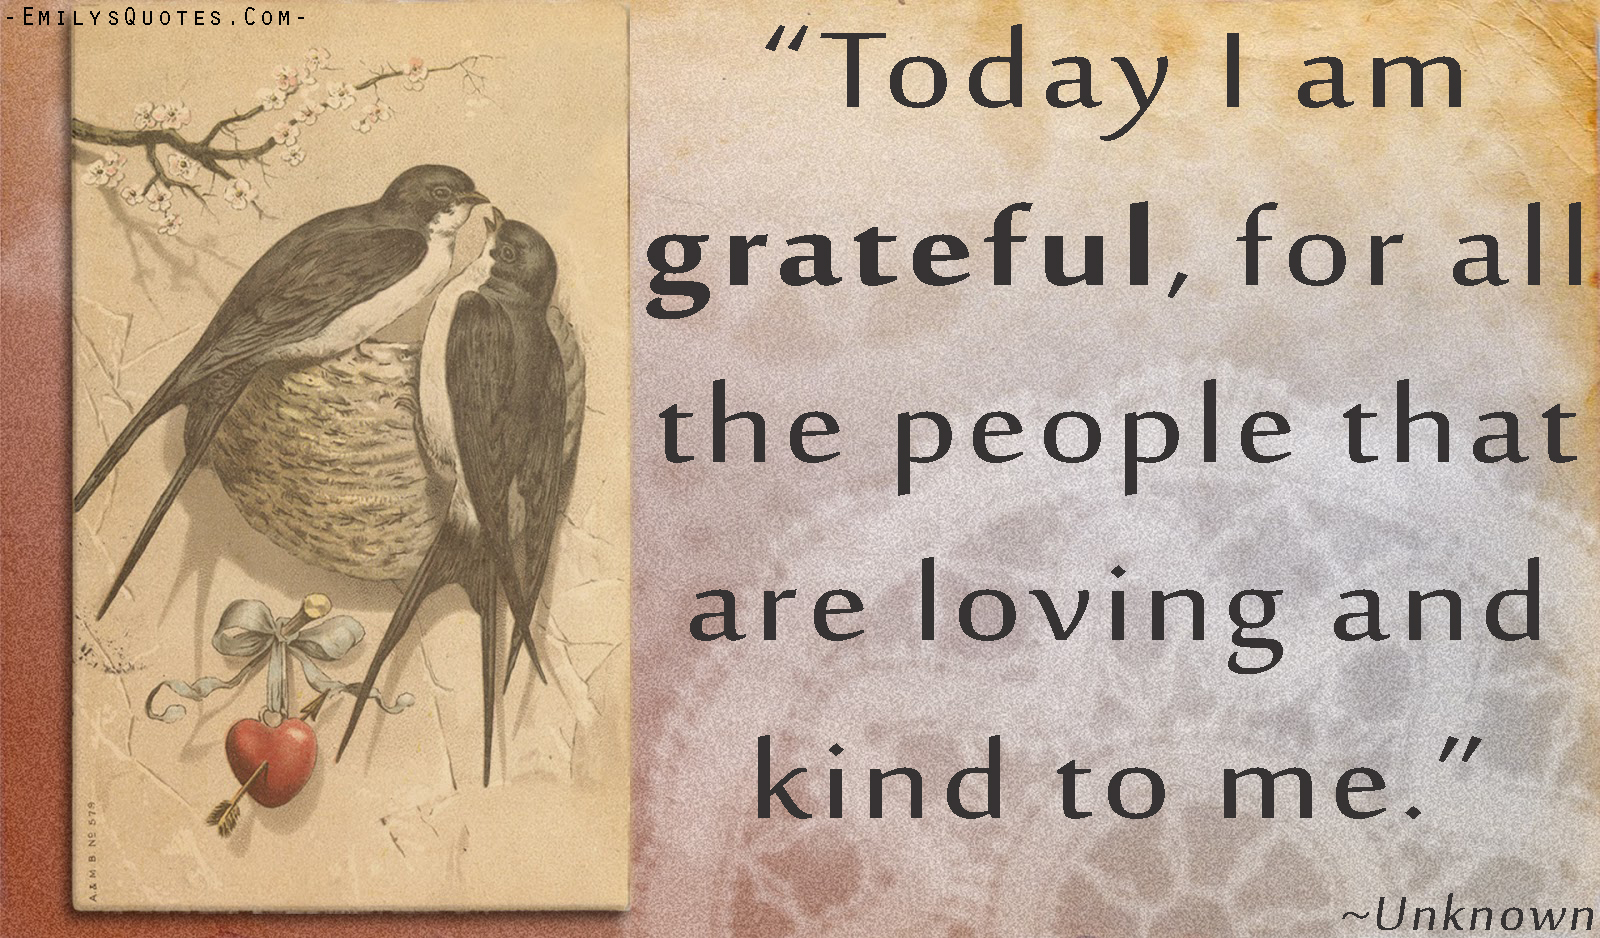 Loving Kindness Quotes Today I Am Grateful For All The People That Are Loving And Kind